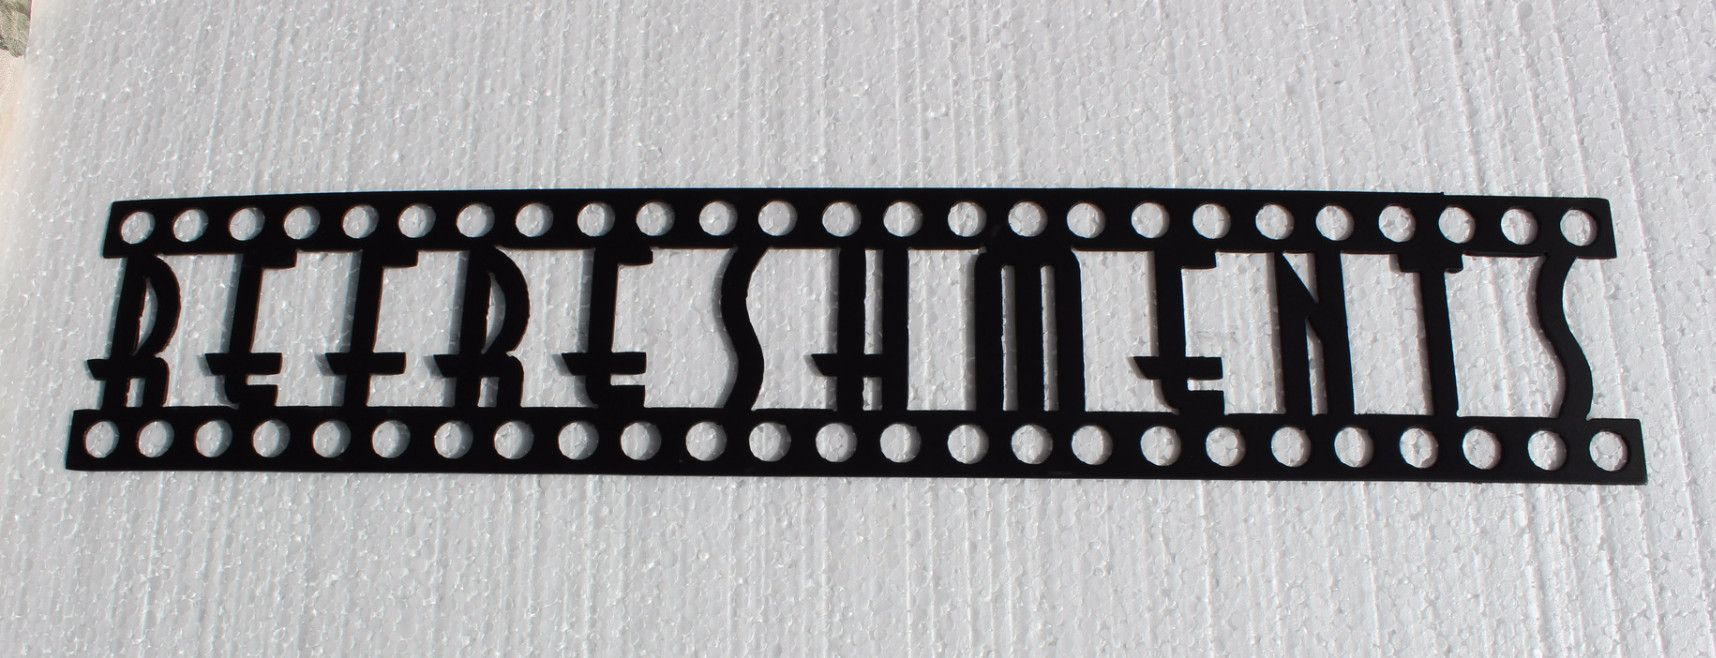 Refreshments word sign home theater decor metal wall art metal